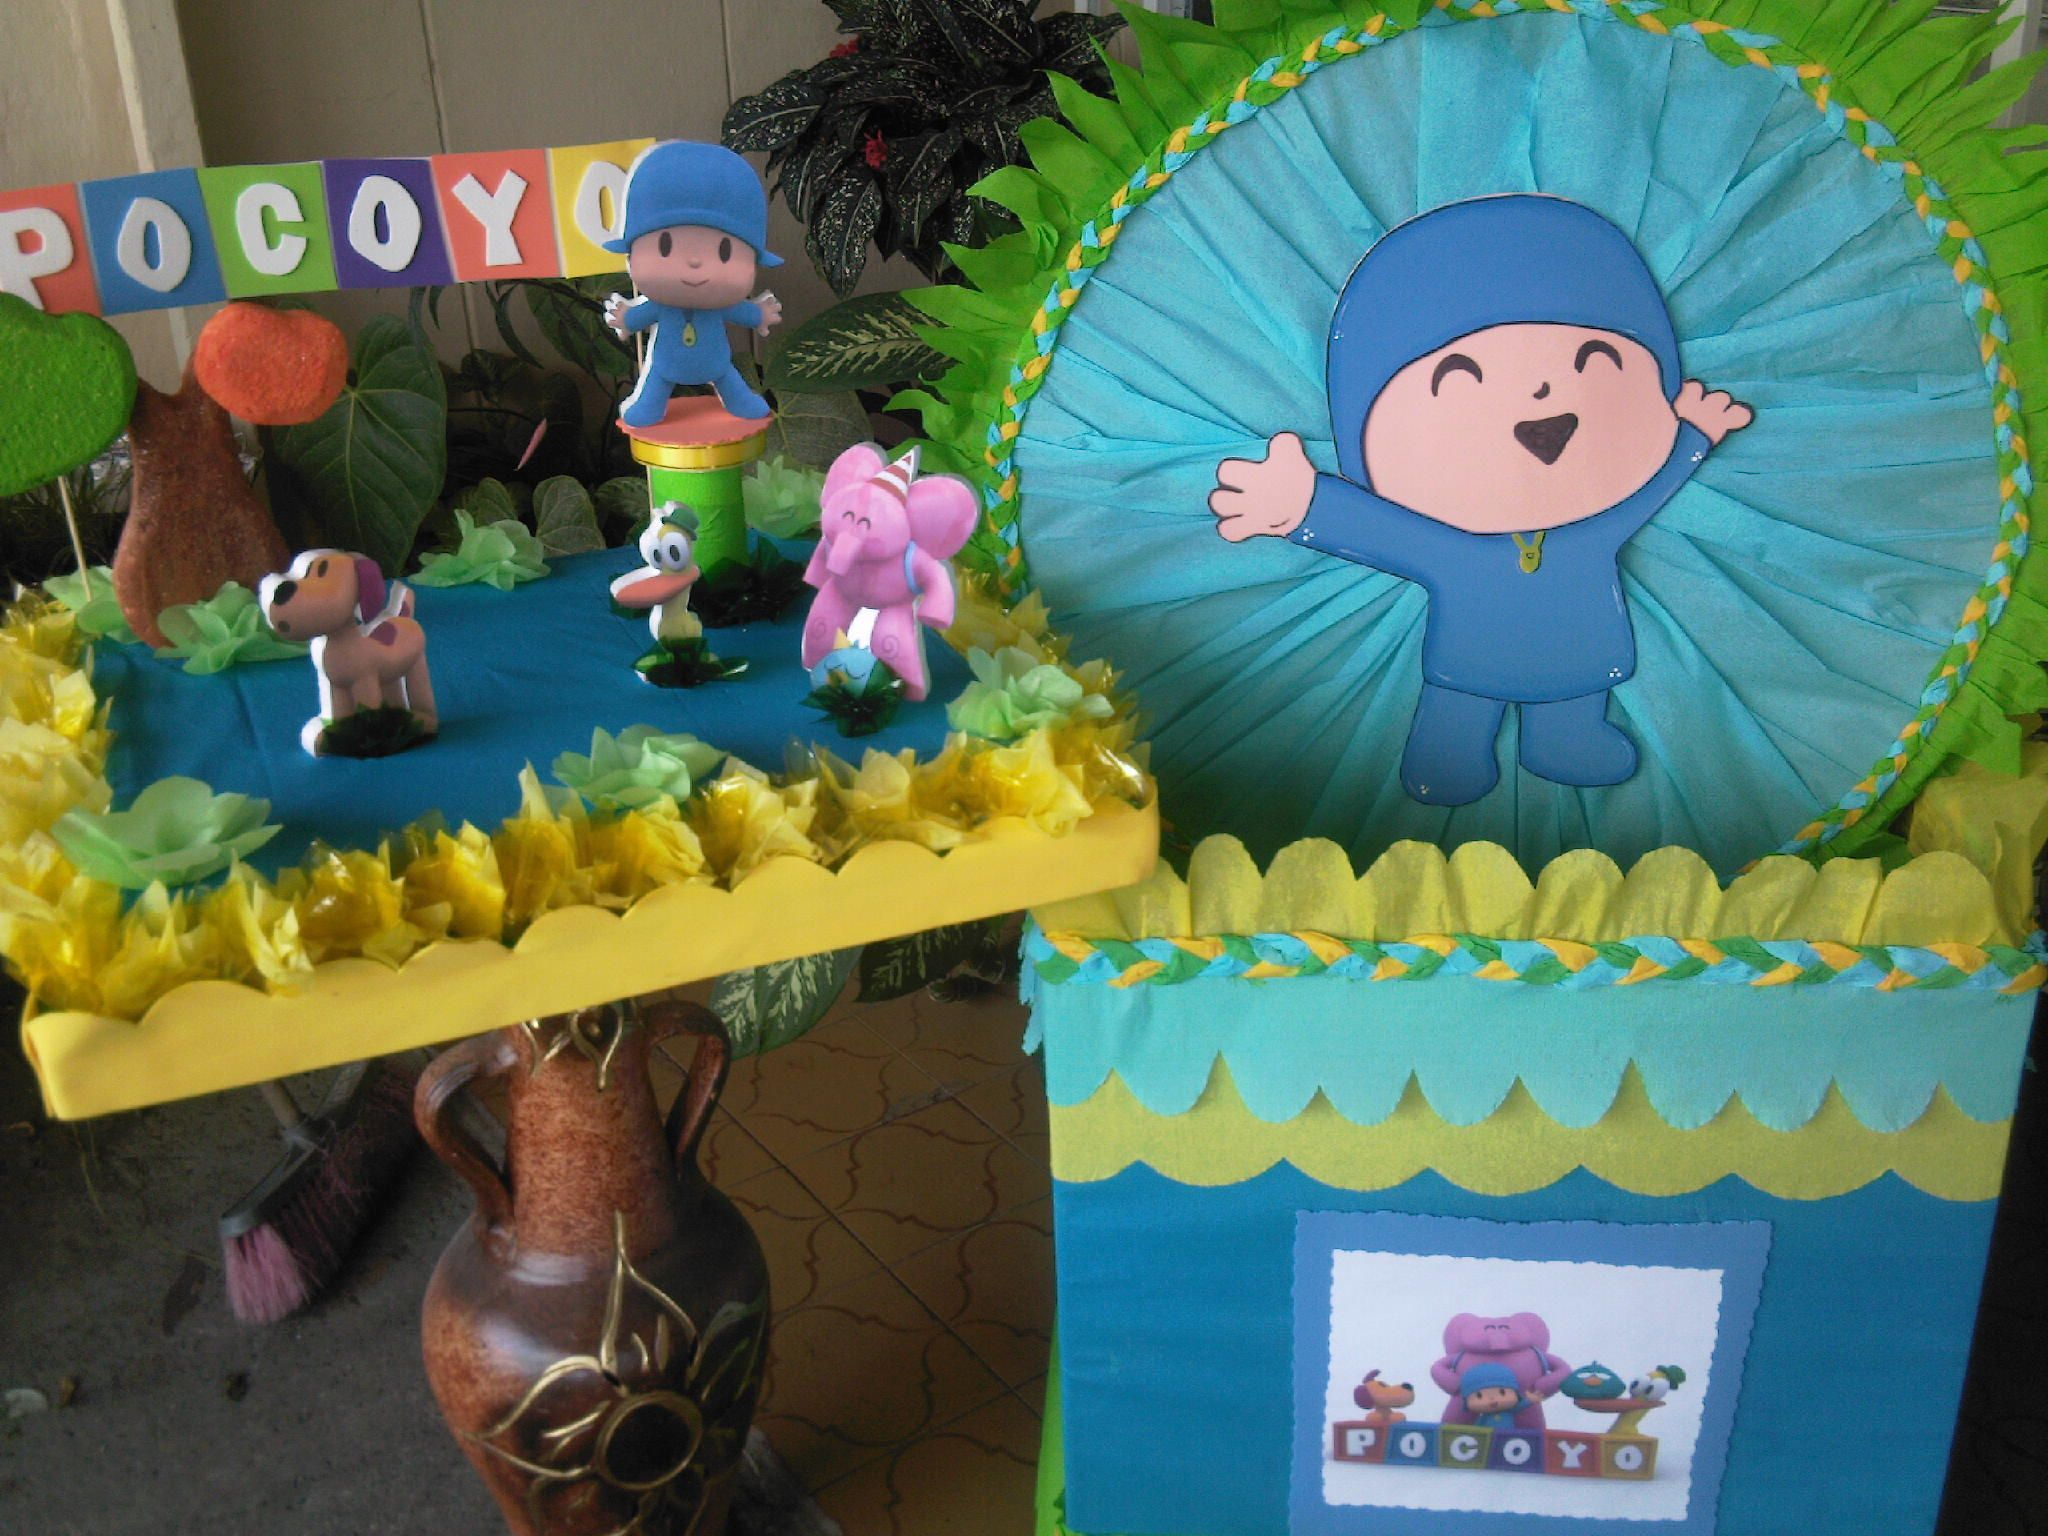 Pocoyo decorations fiesta pocoyo decoraci n imagui for Imagenes de decoracion de fiestas infantiles